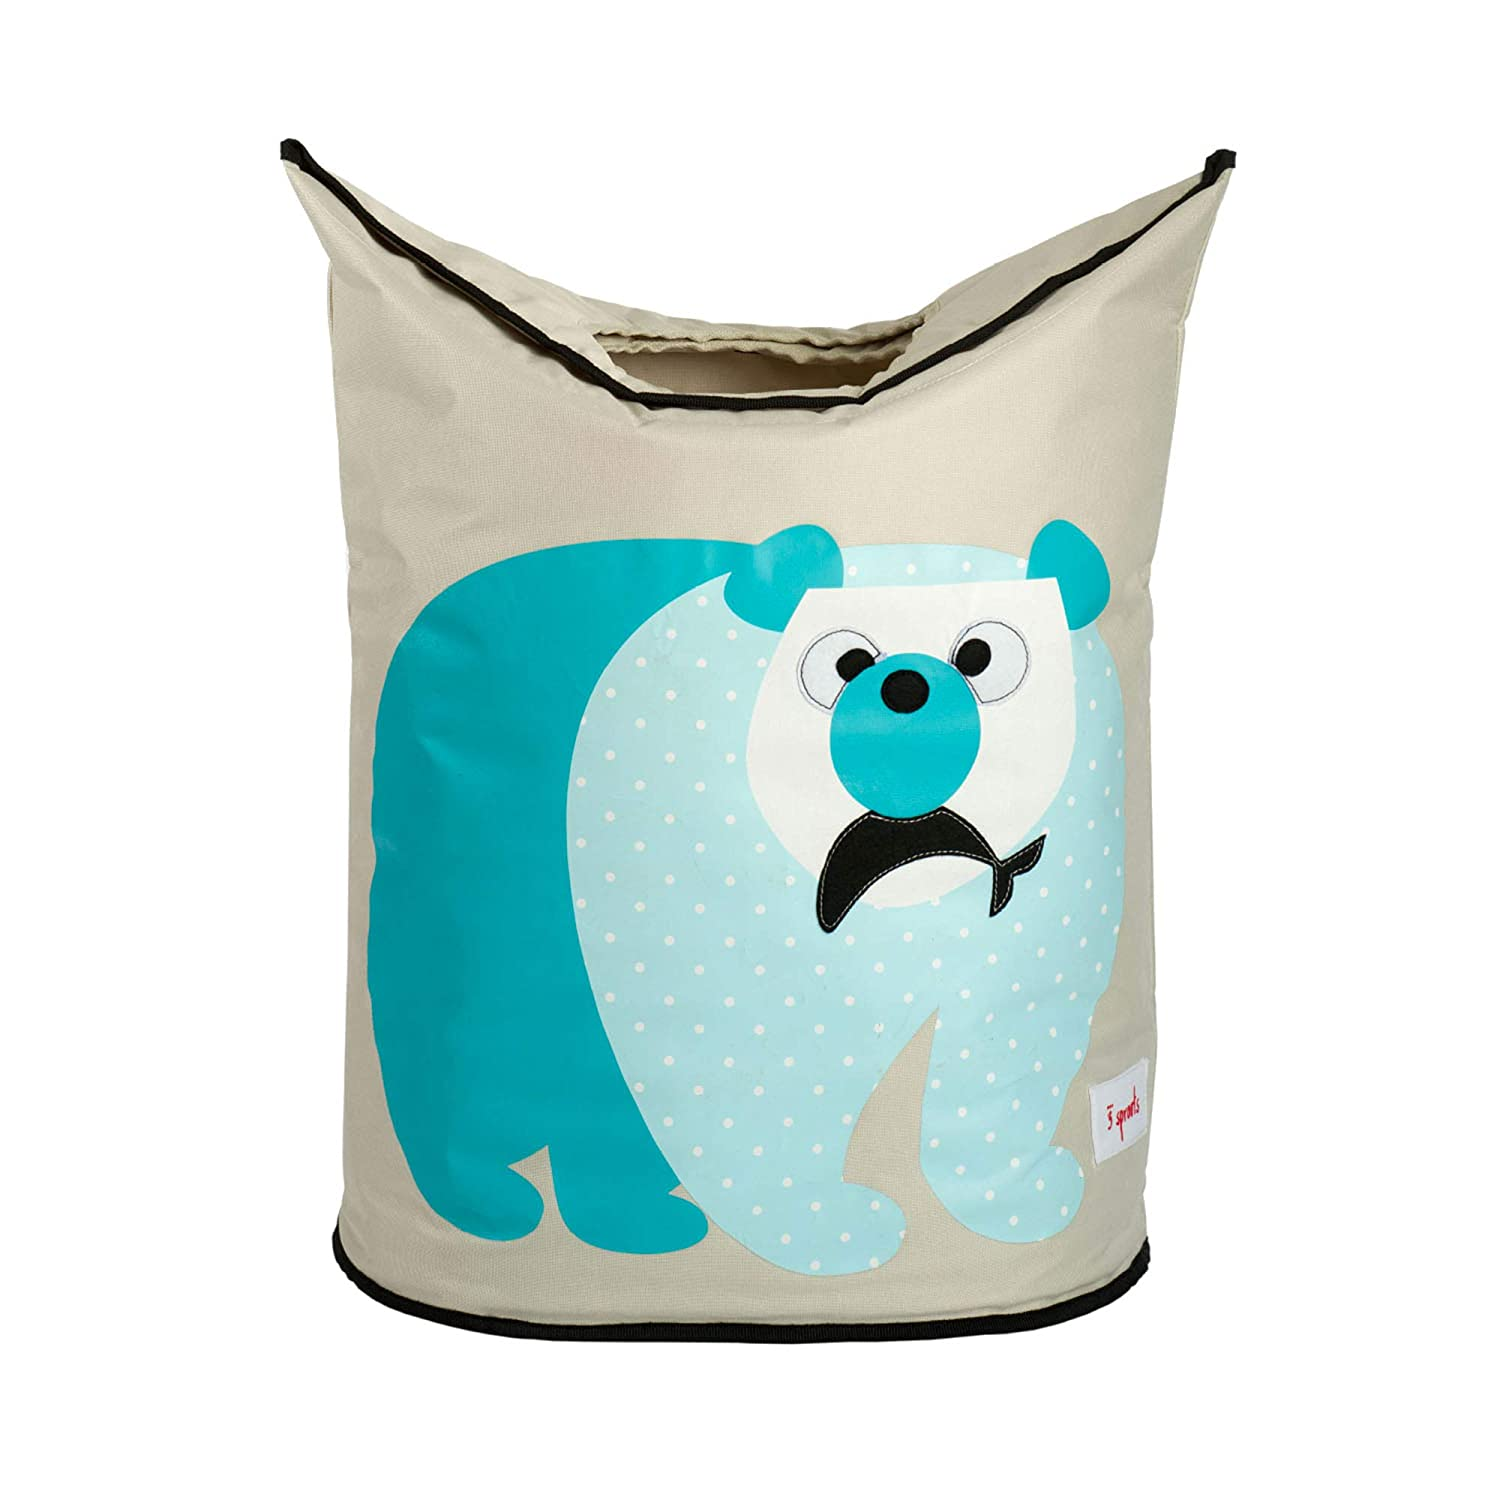 3 Sprouts Baby Laundry Hamper Storage Basket Organizer Bin for Nursery Clothes, Polar Bear